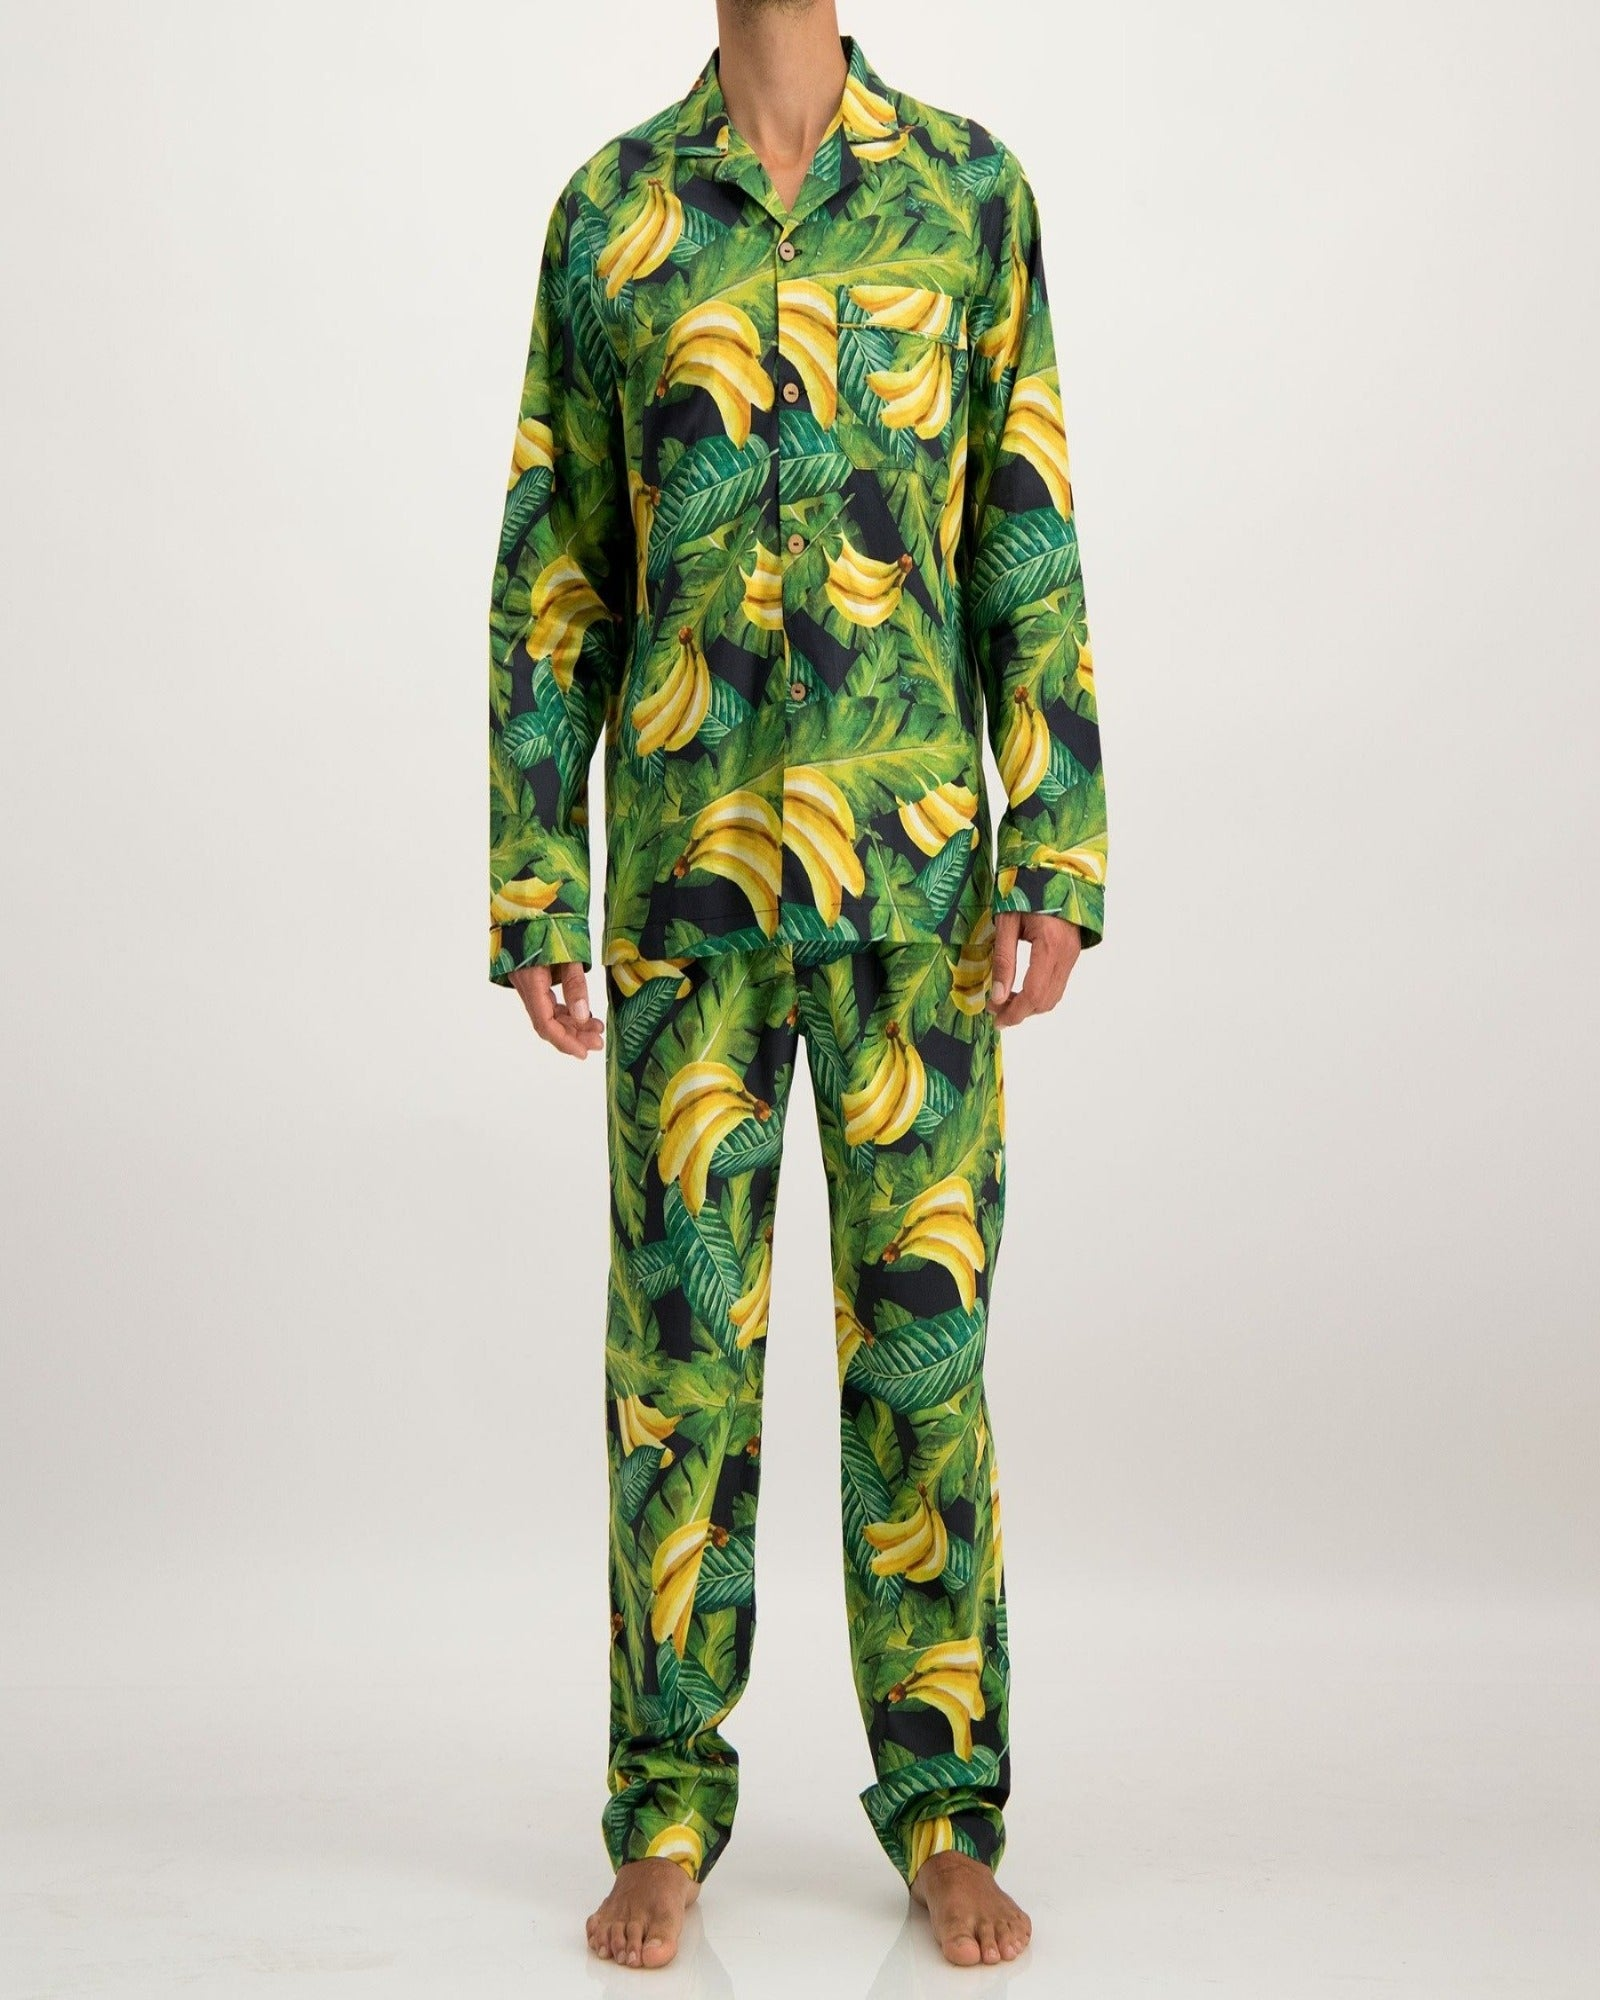 Mens Long Pyjamas Bananas On Leaves - Woodstock Laundry